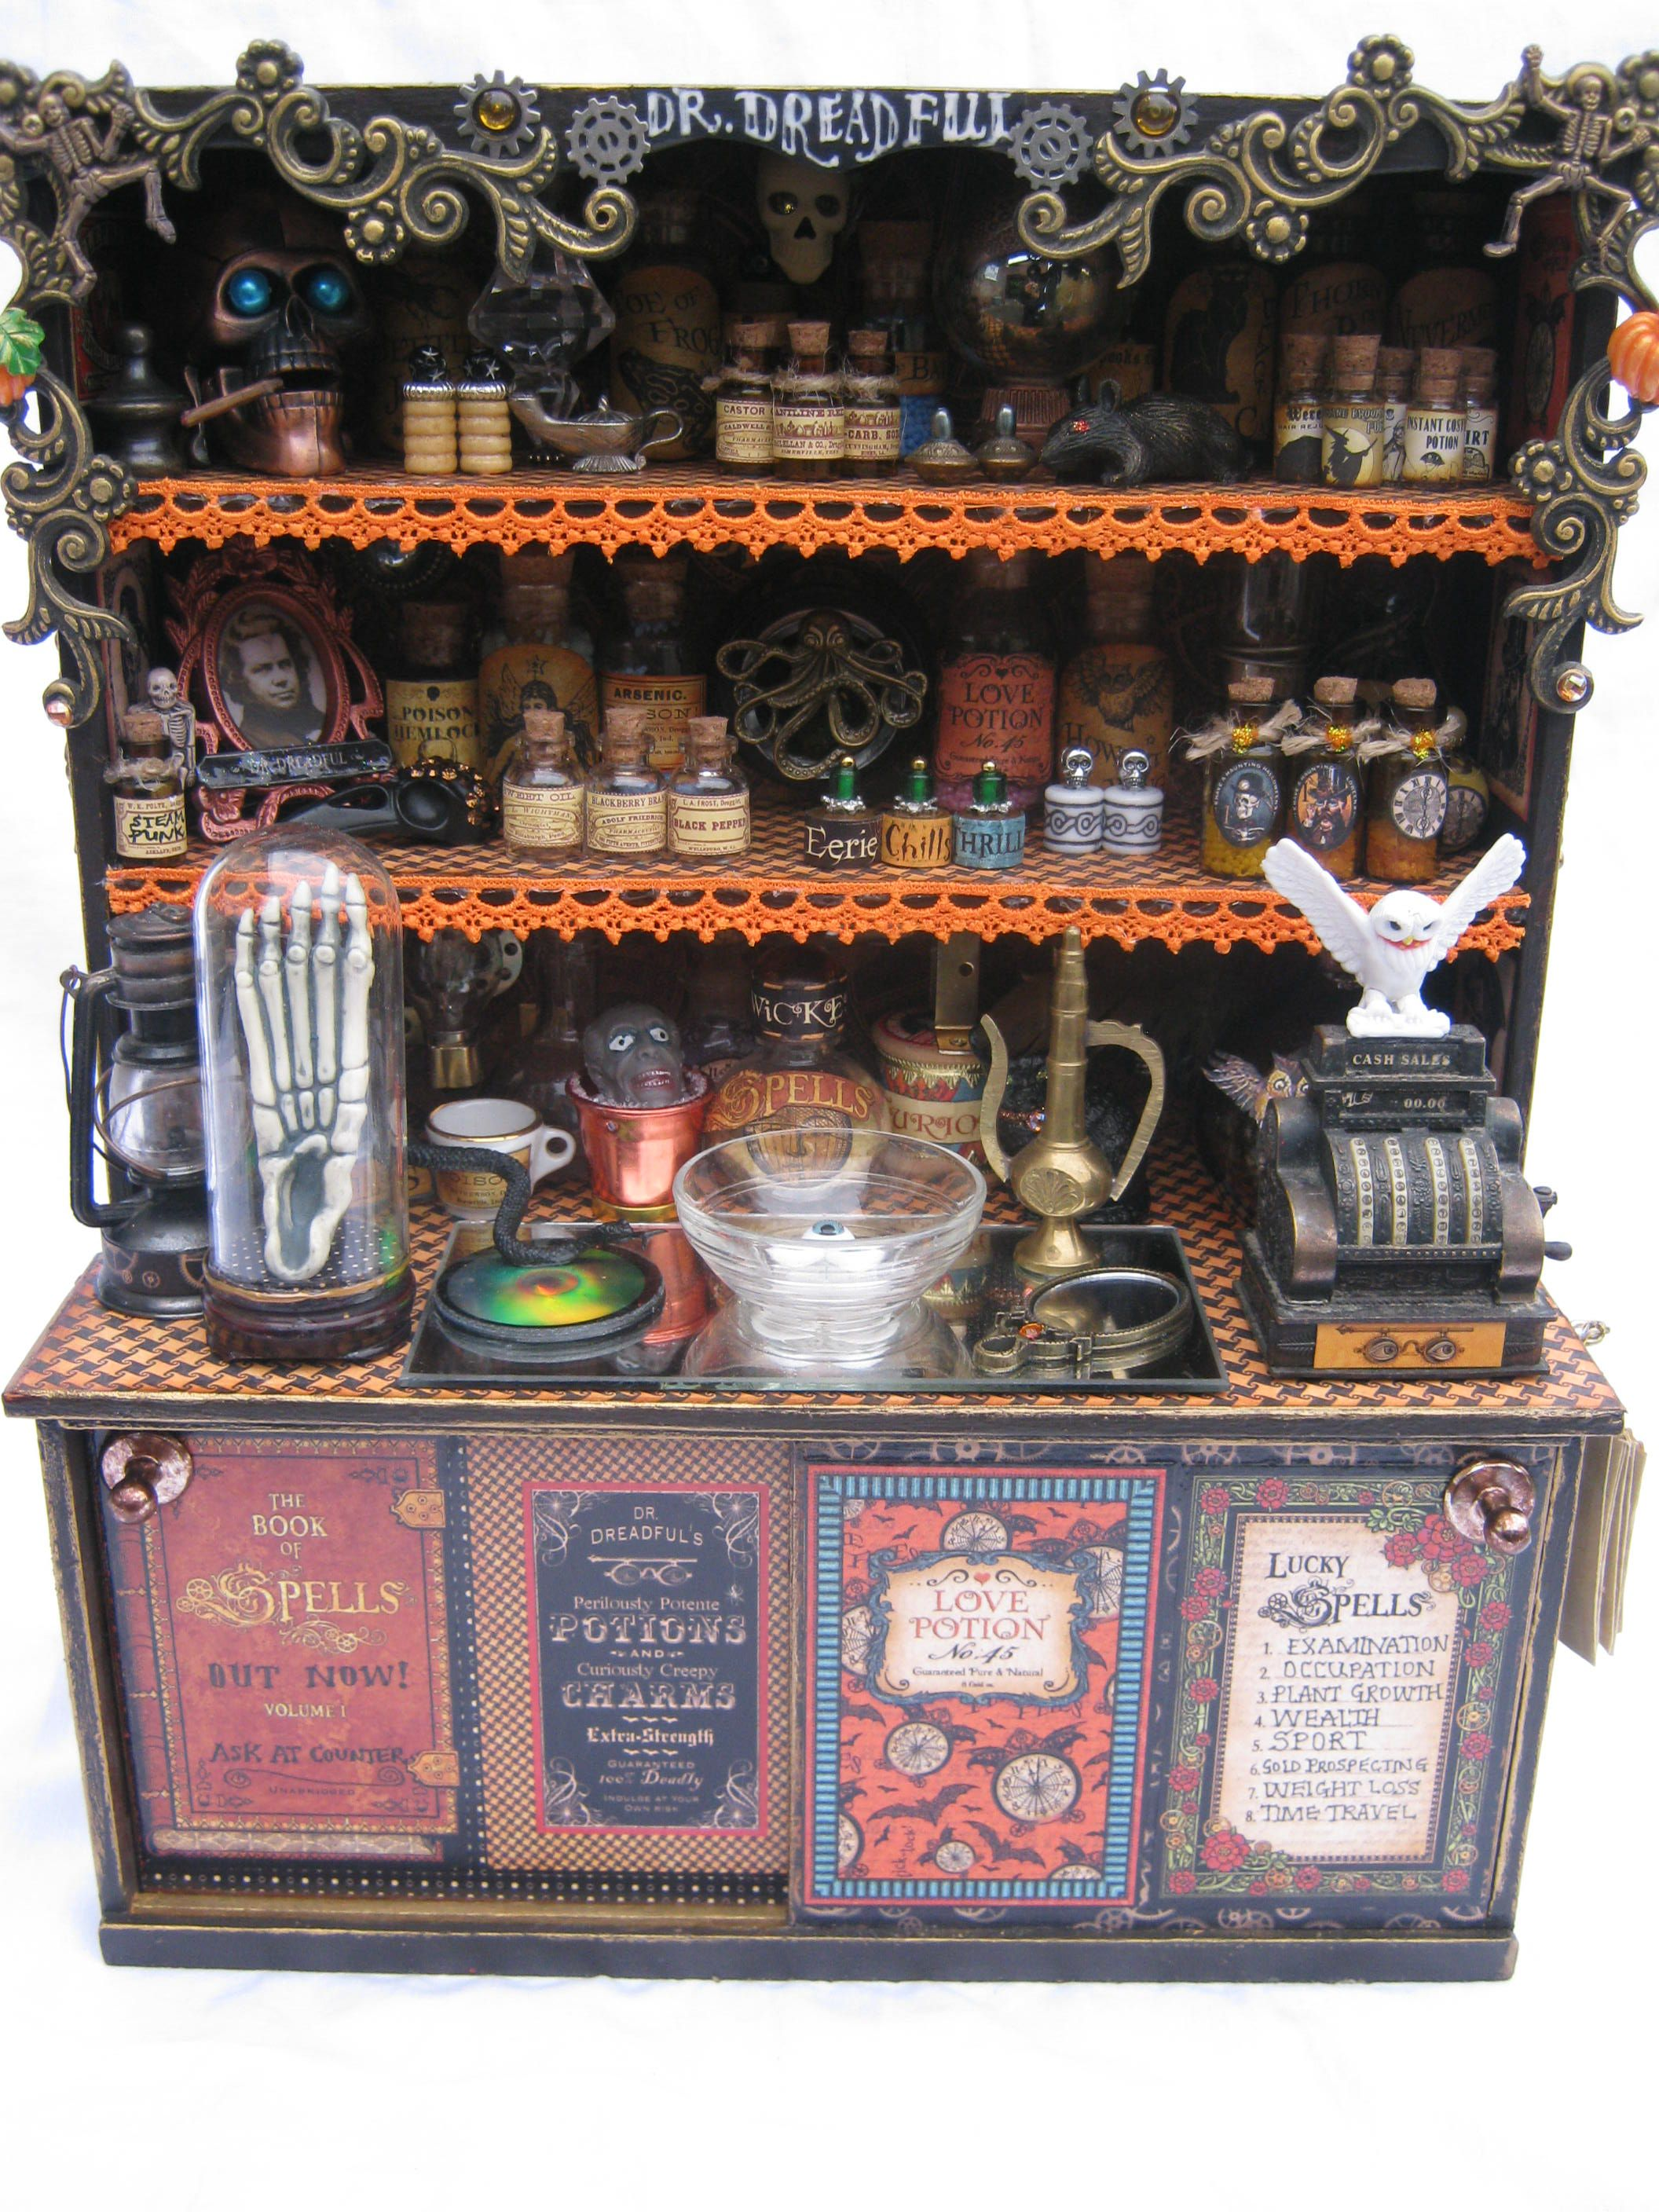 FOR SALE! Dr Dreadful's apothecary shoppe. (Graphic 45